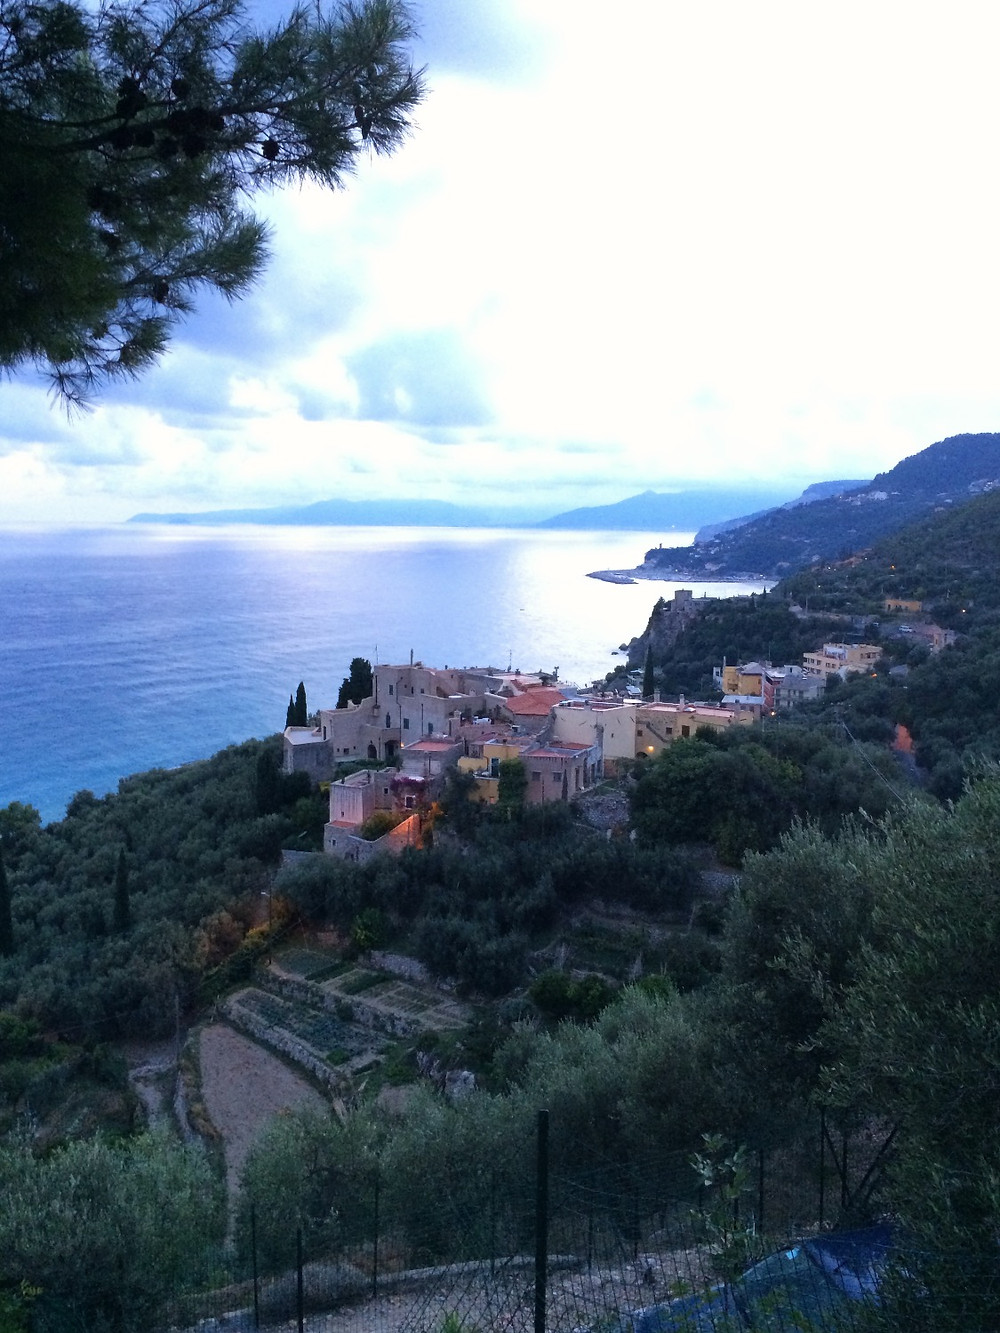 evening view in liguria